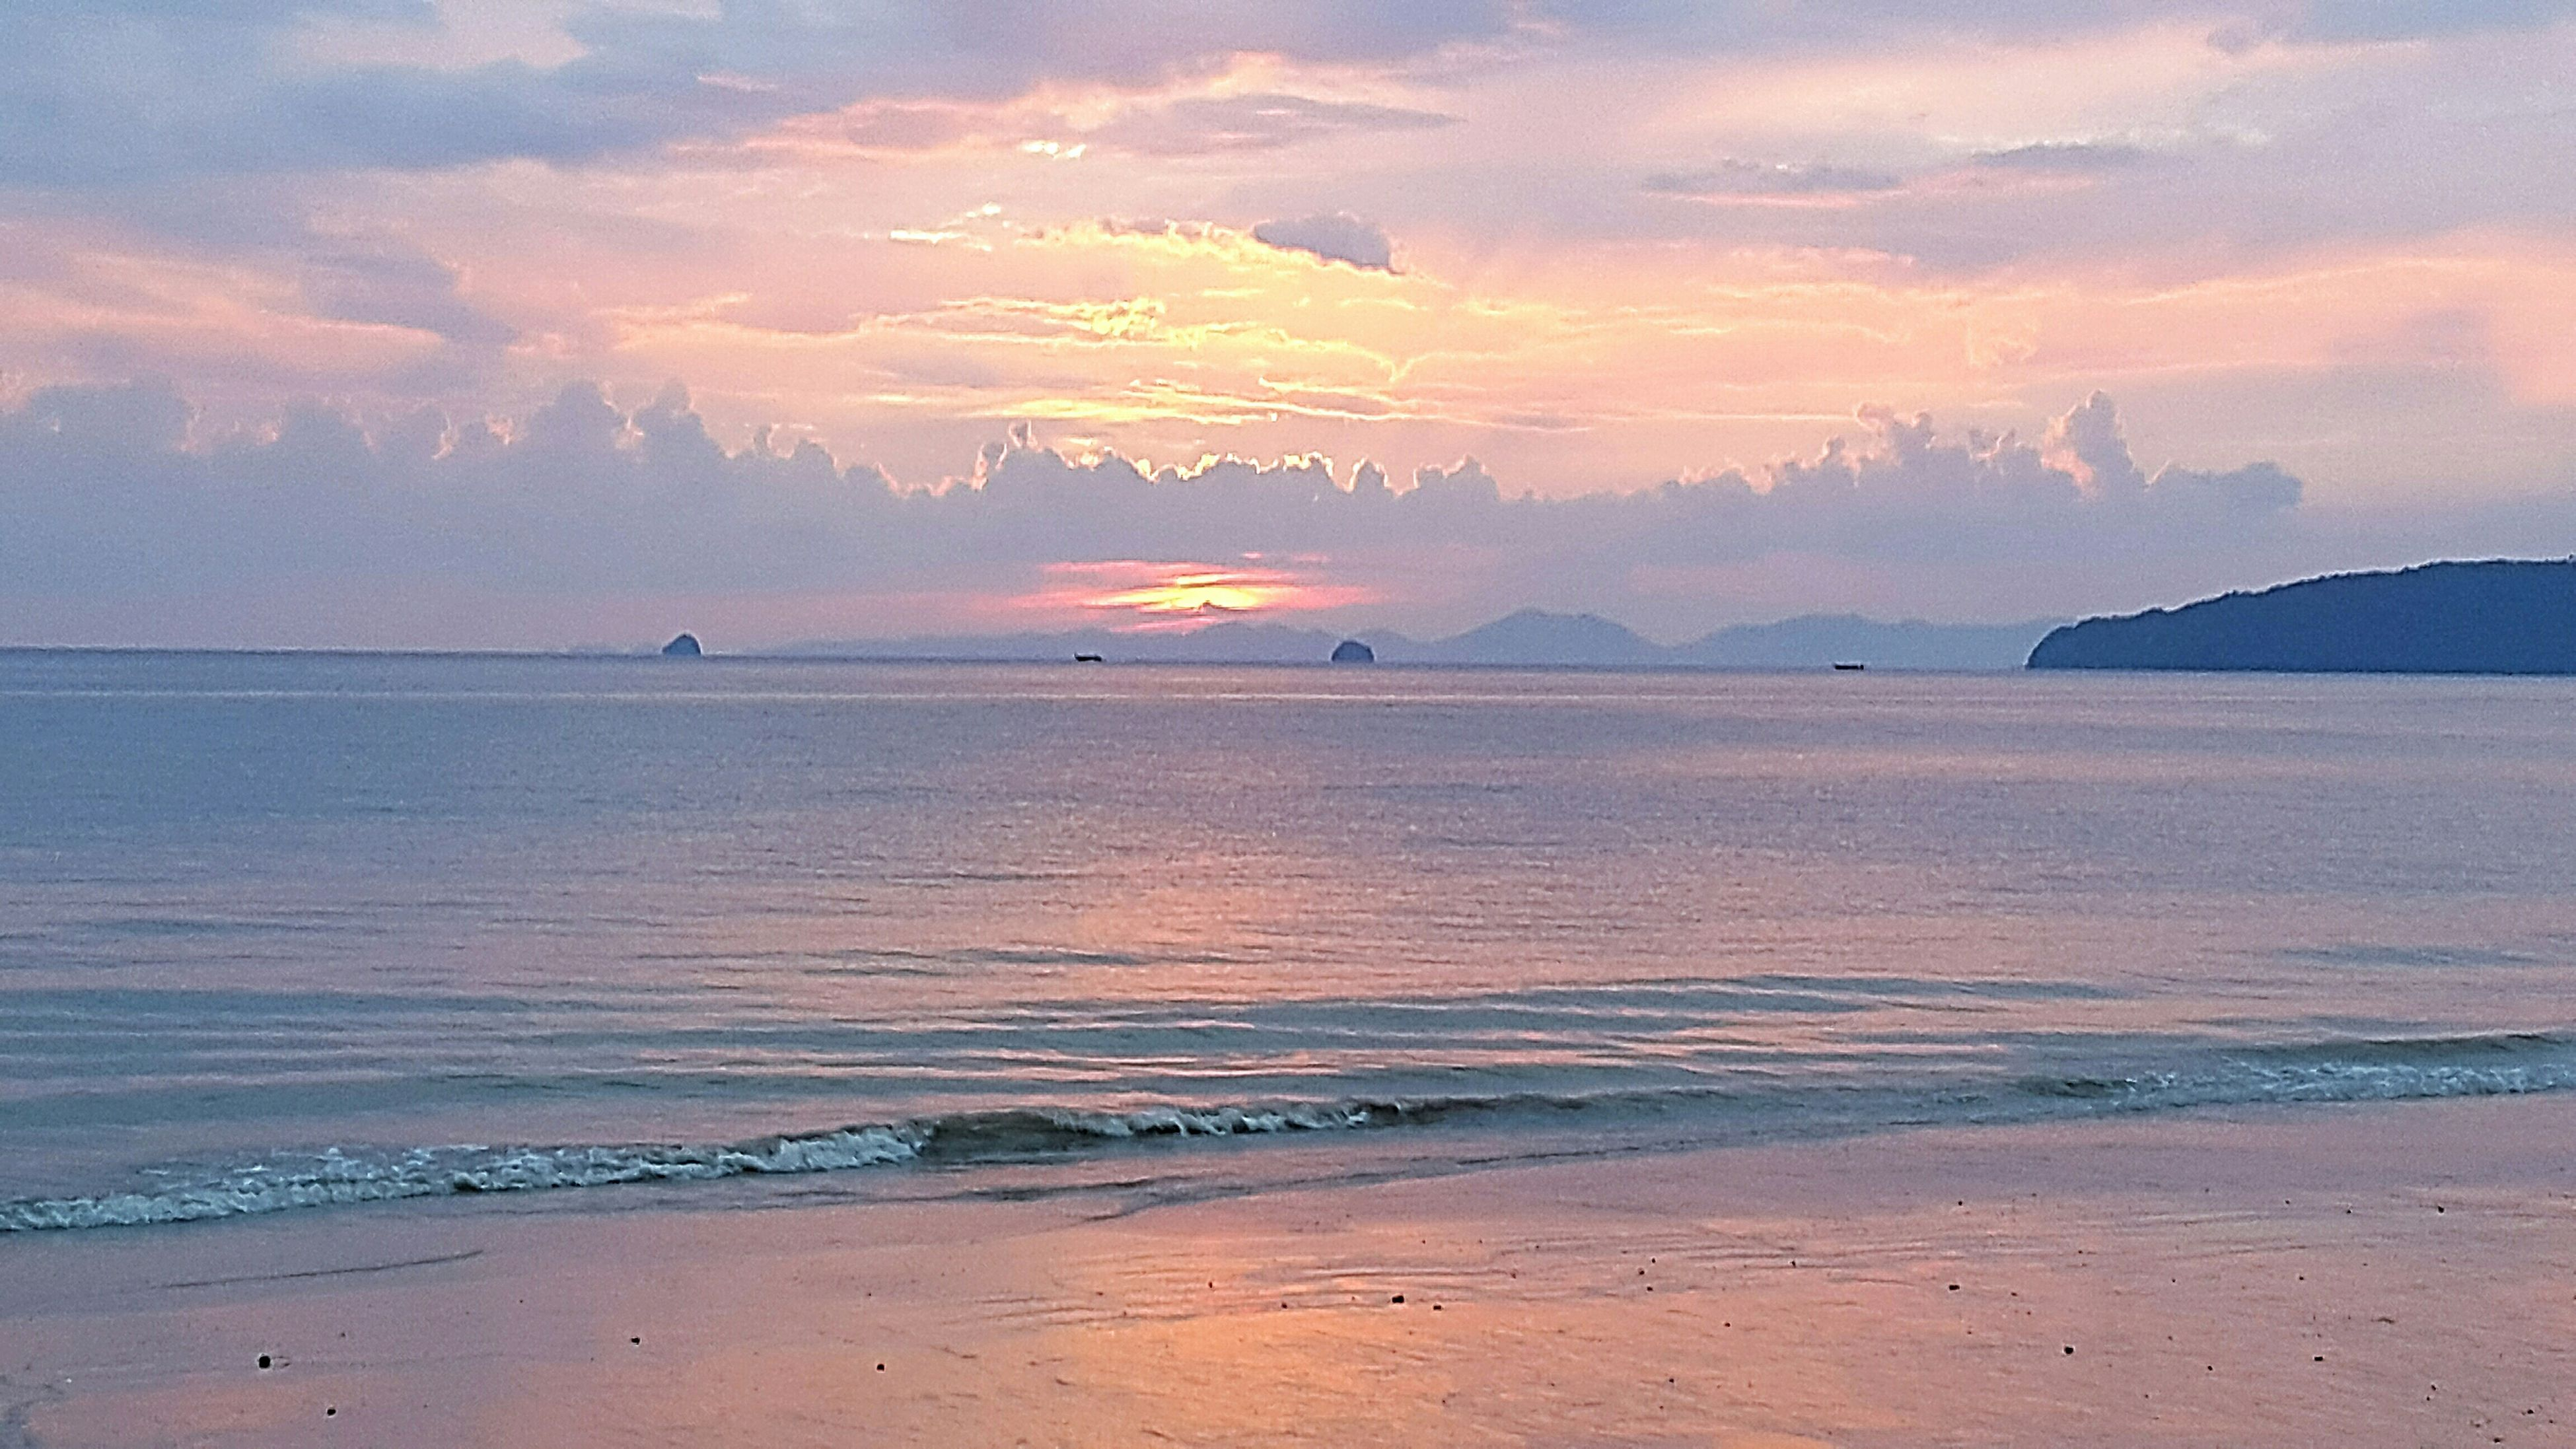 water, sea, tranquil scene, scenics, sunset, sky, tranquility, beauty in nature, beach, horizon over water, cloud - sky, shore, idyllic, nature, cloud, orange color, sand, coastline, reflection, cloudy